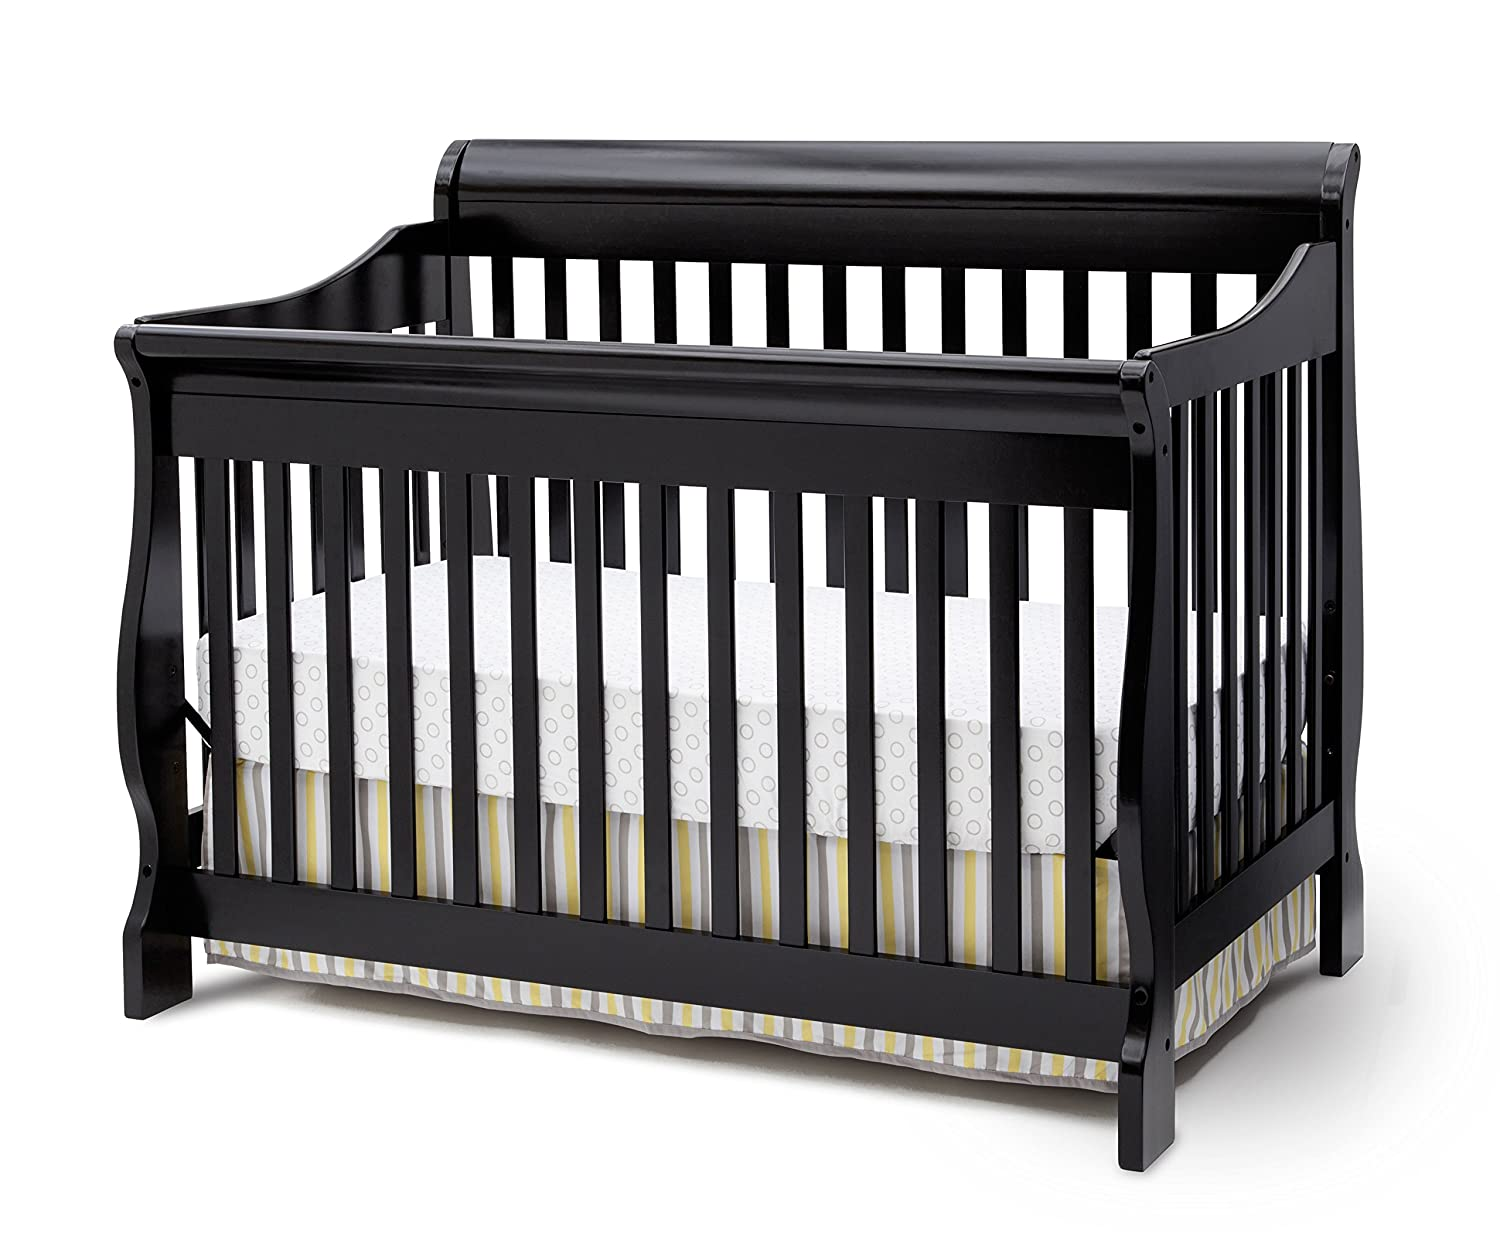 convertible baby cribs. Amazon.com : Delta Children Canton 4-in-1 Convertible Baby Crib, Black Sleigh Crib Combo Cribs A